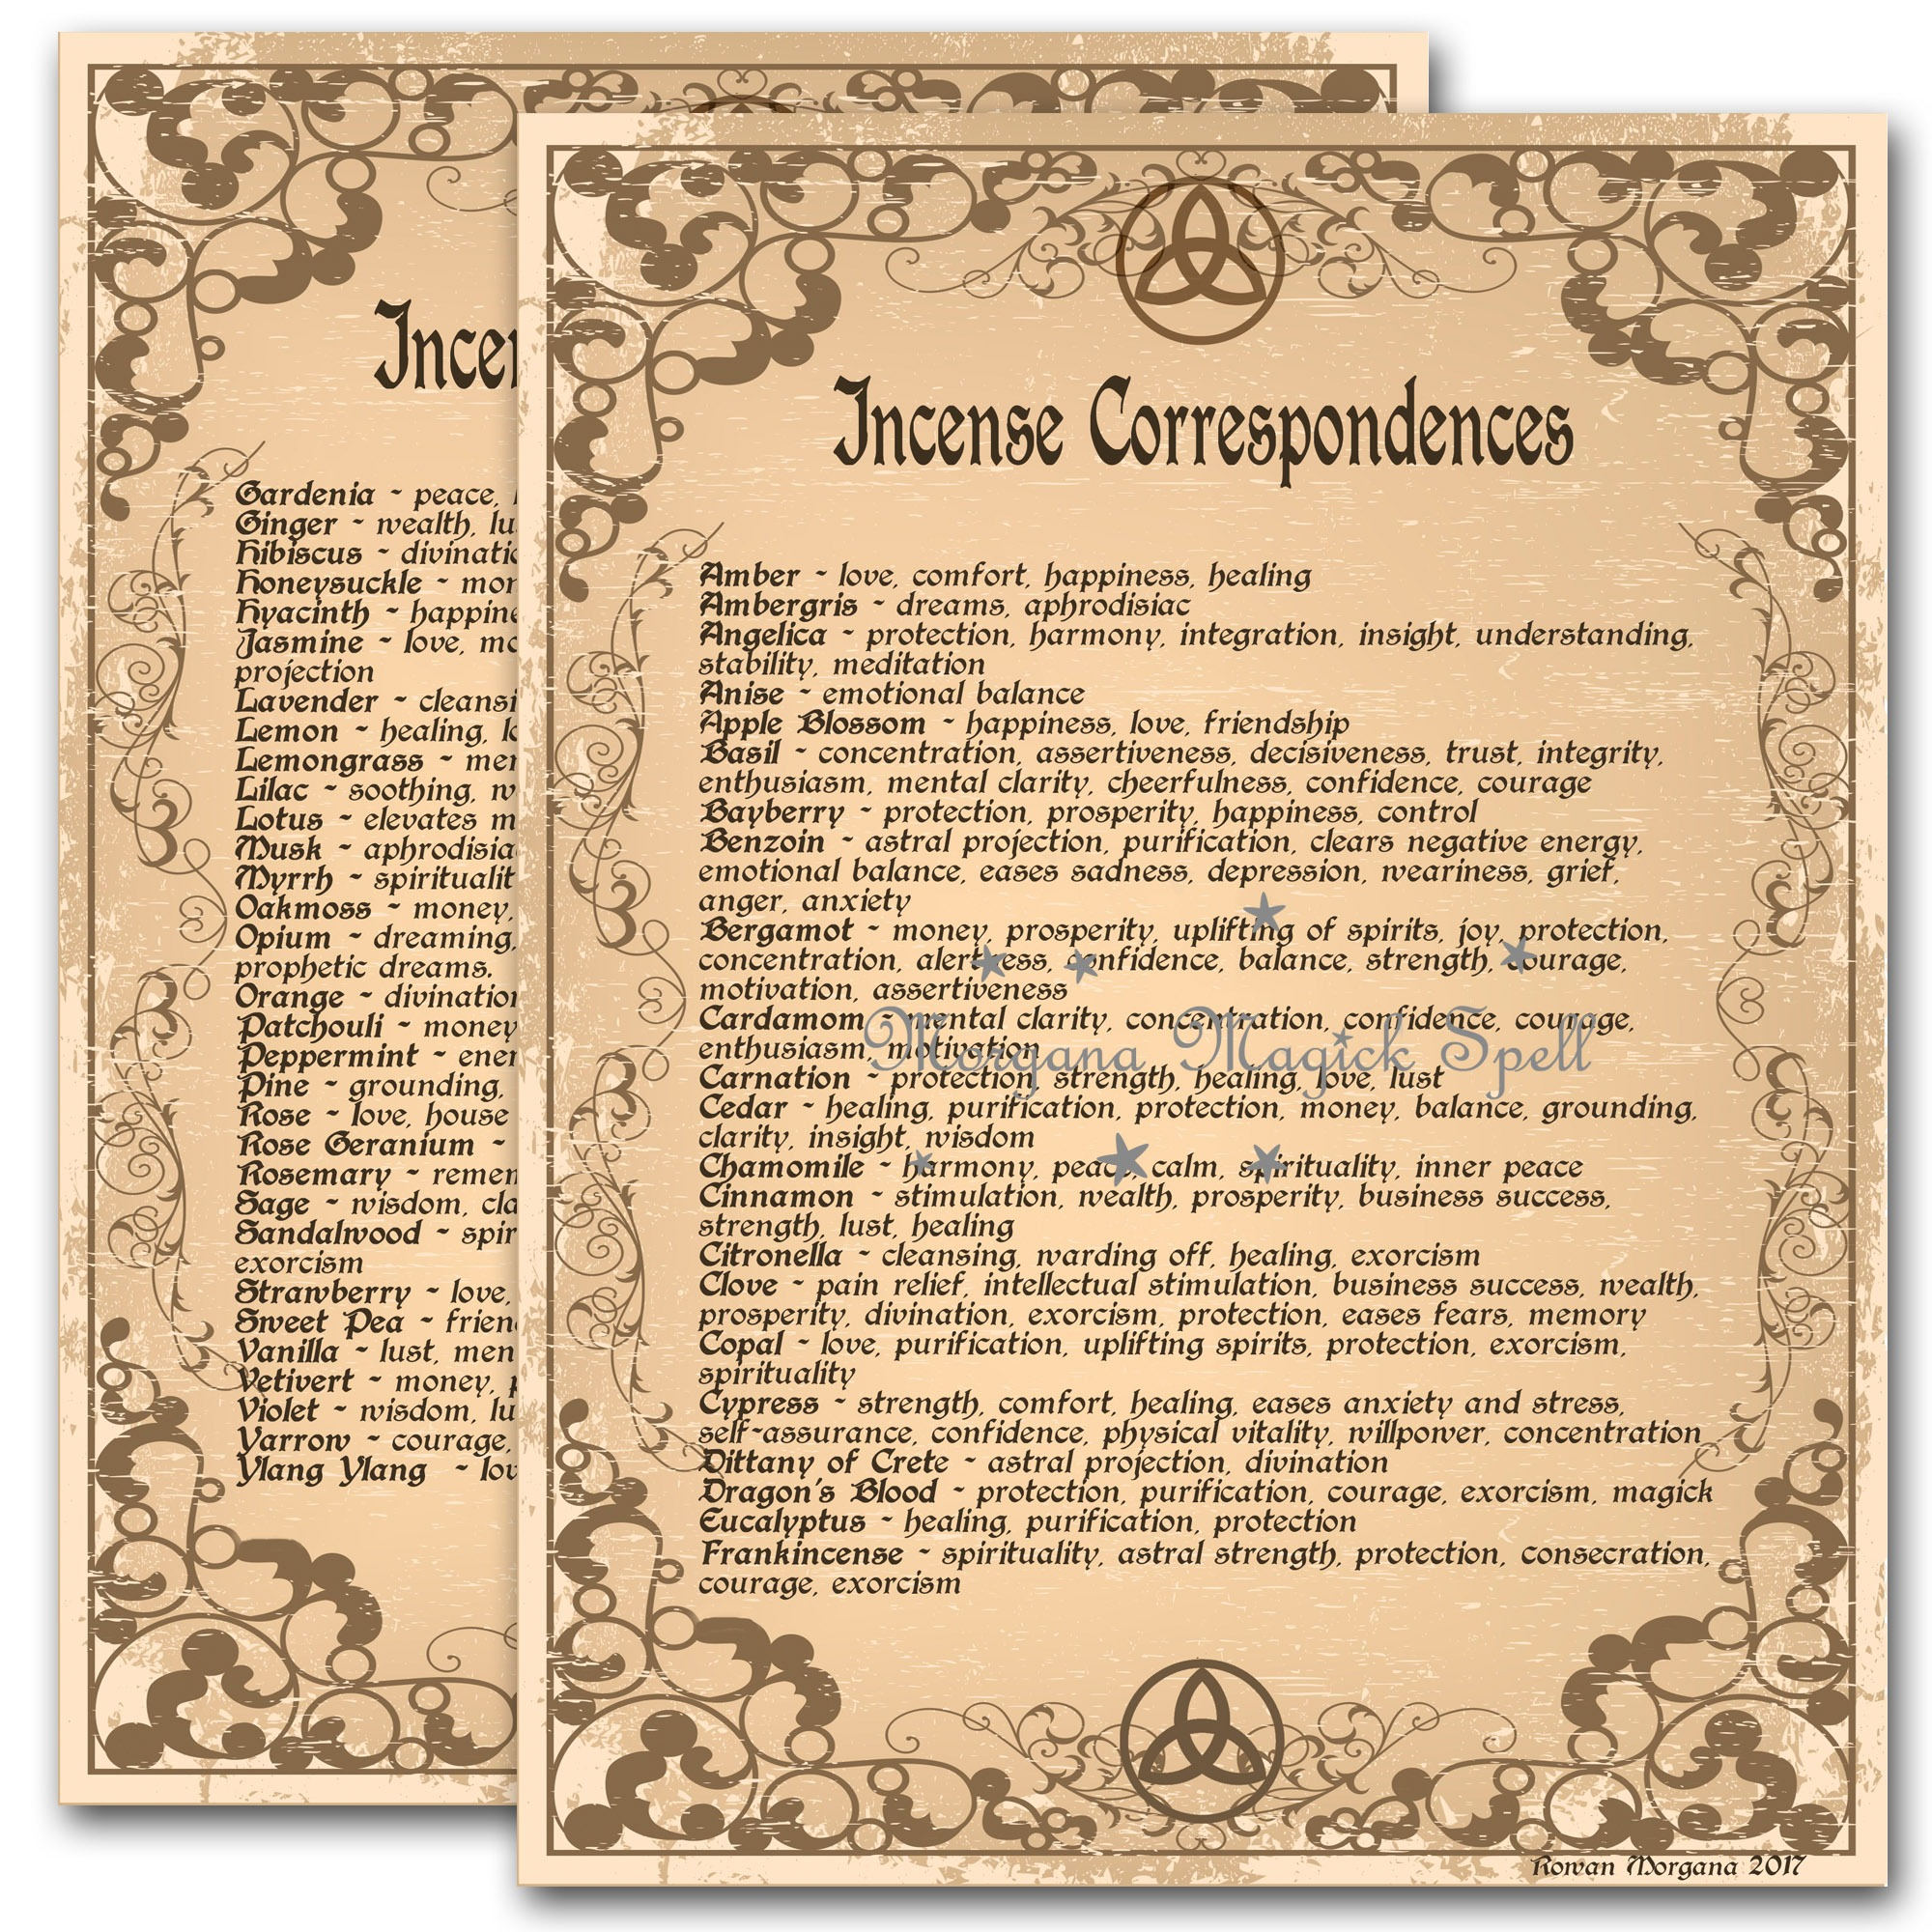 INCENSE CORRESPONDENCES